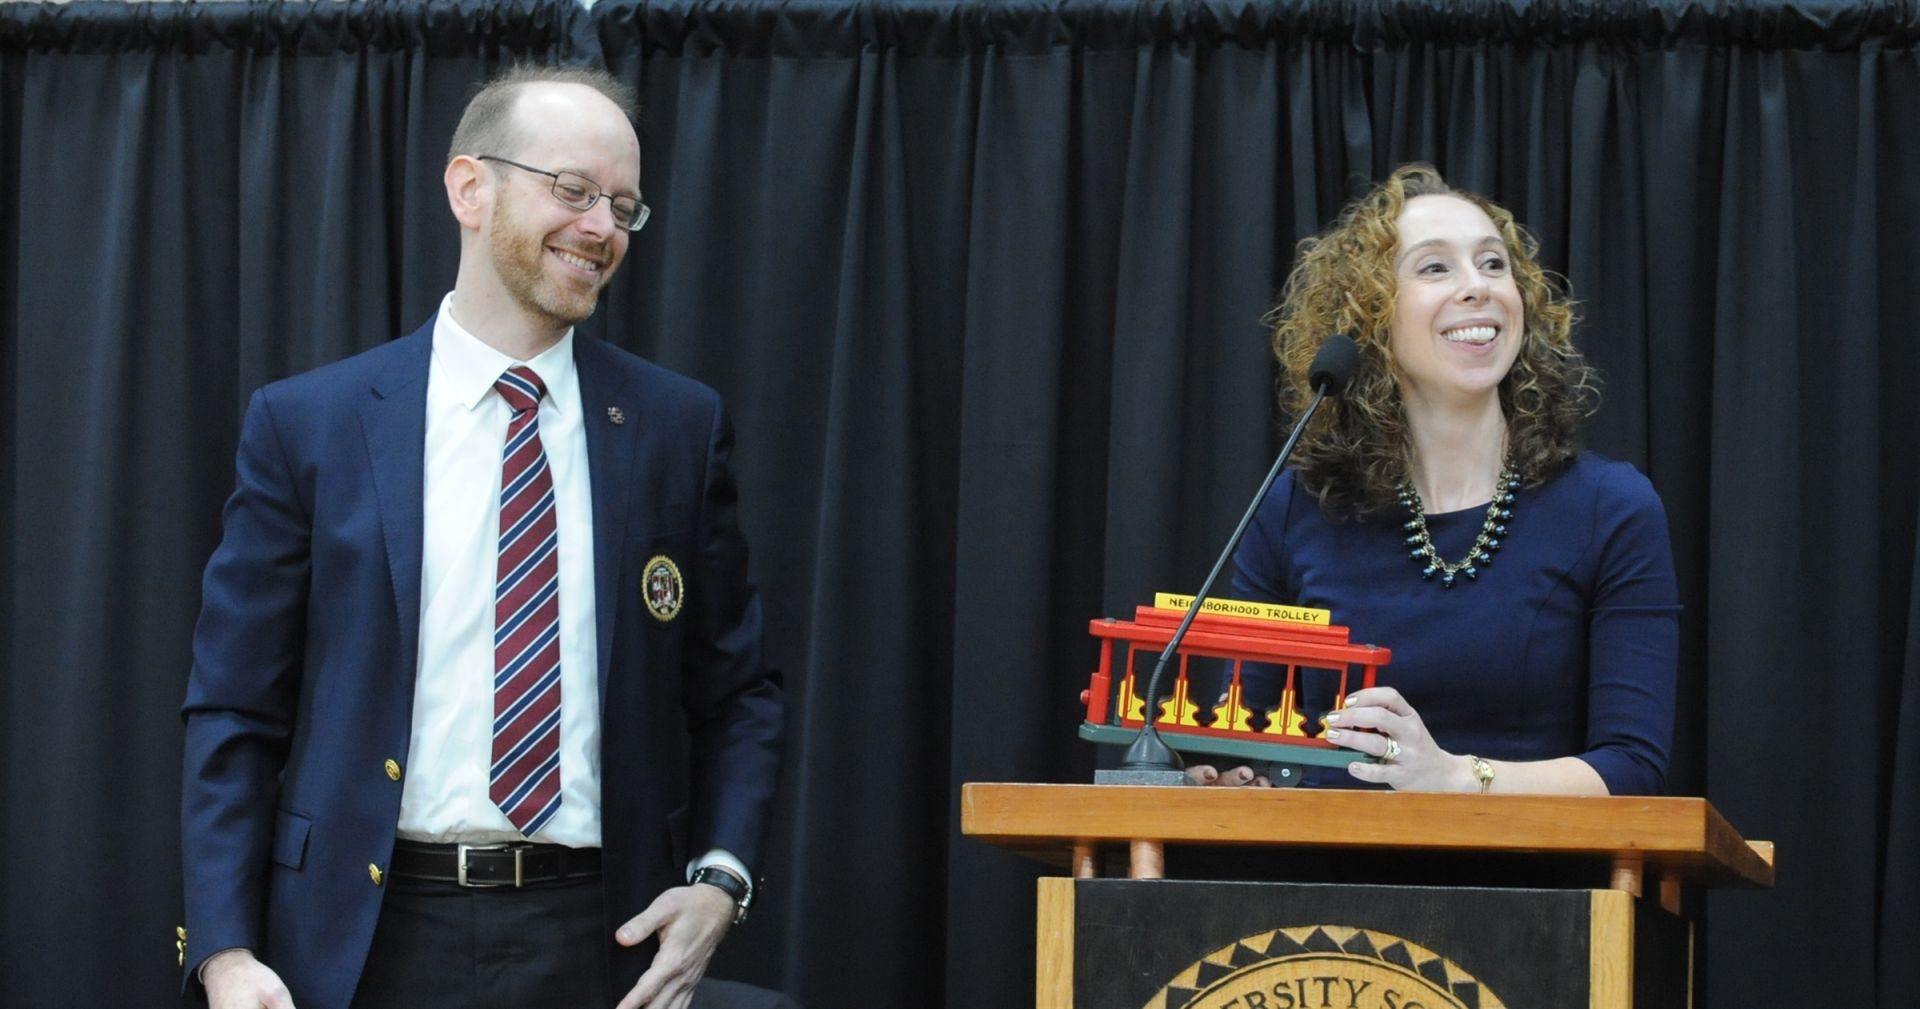 Faculty representative Lisa Ulery presents a replica of the Mr. Rogers' neighborhood trolley to the new Head of School.